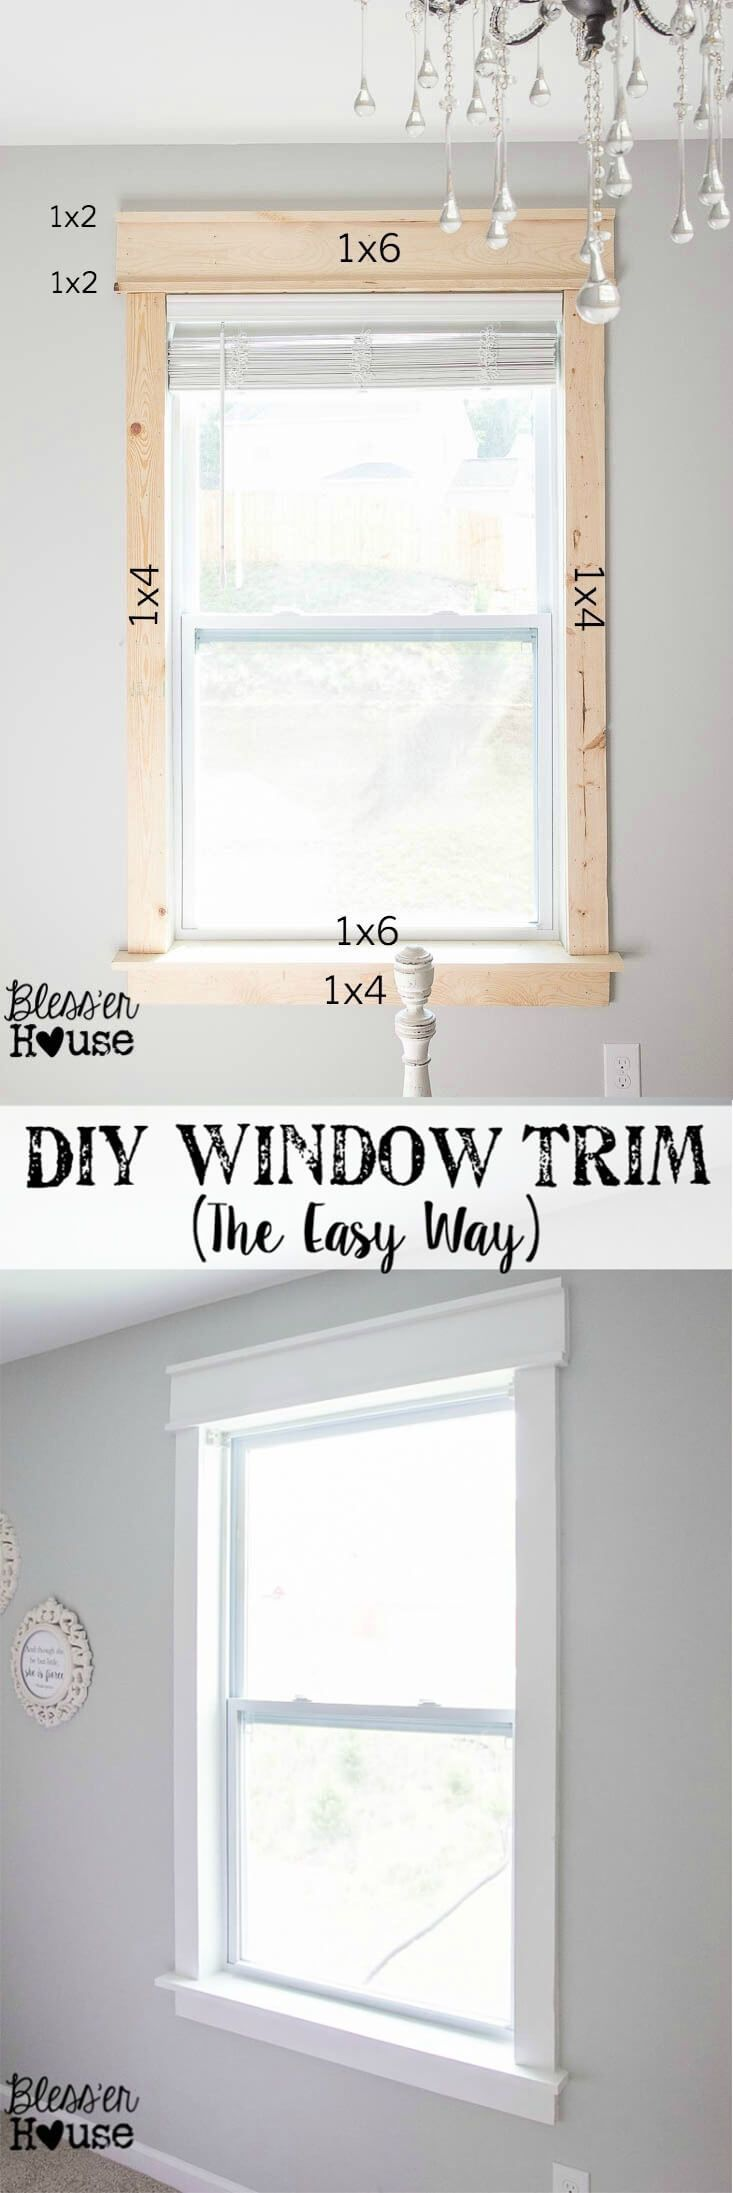 Diy interior window trim - 27 Creative Molding Ideas To Bring Instant Character To Your Home